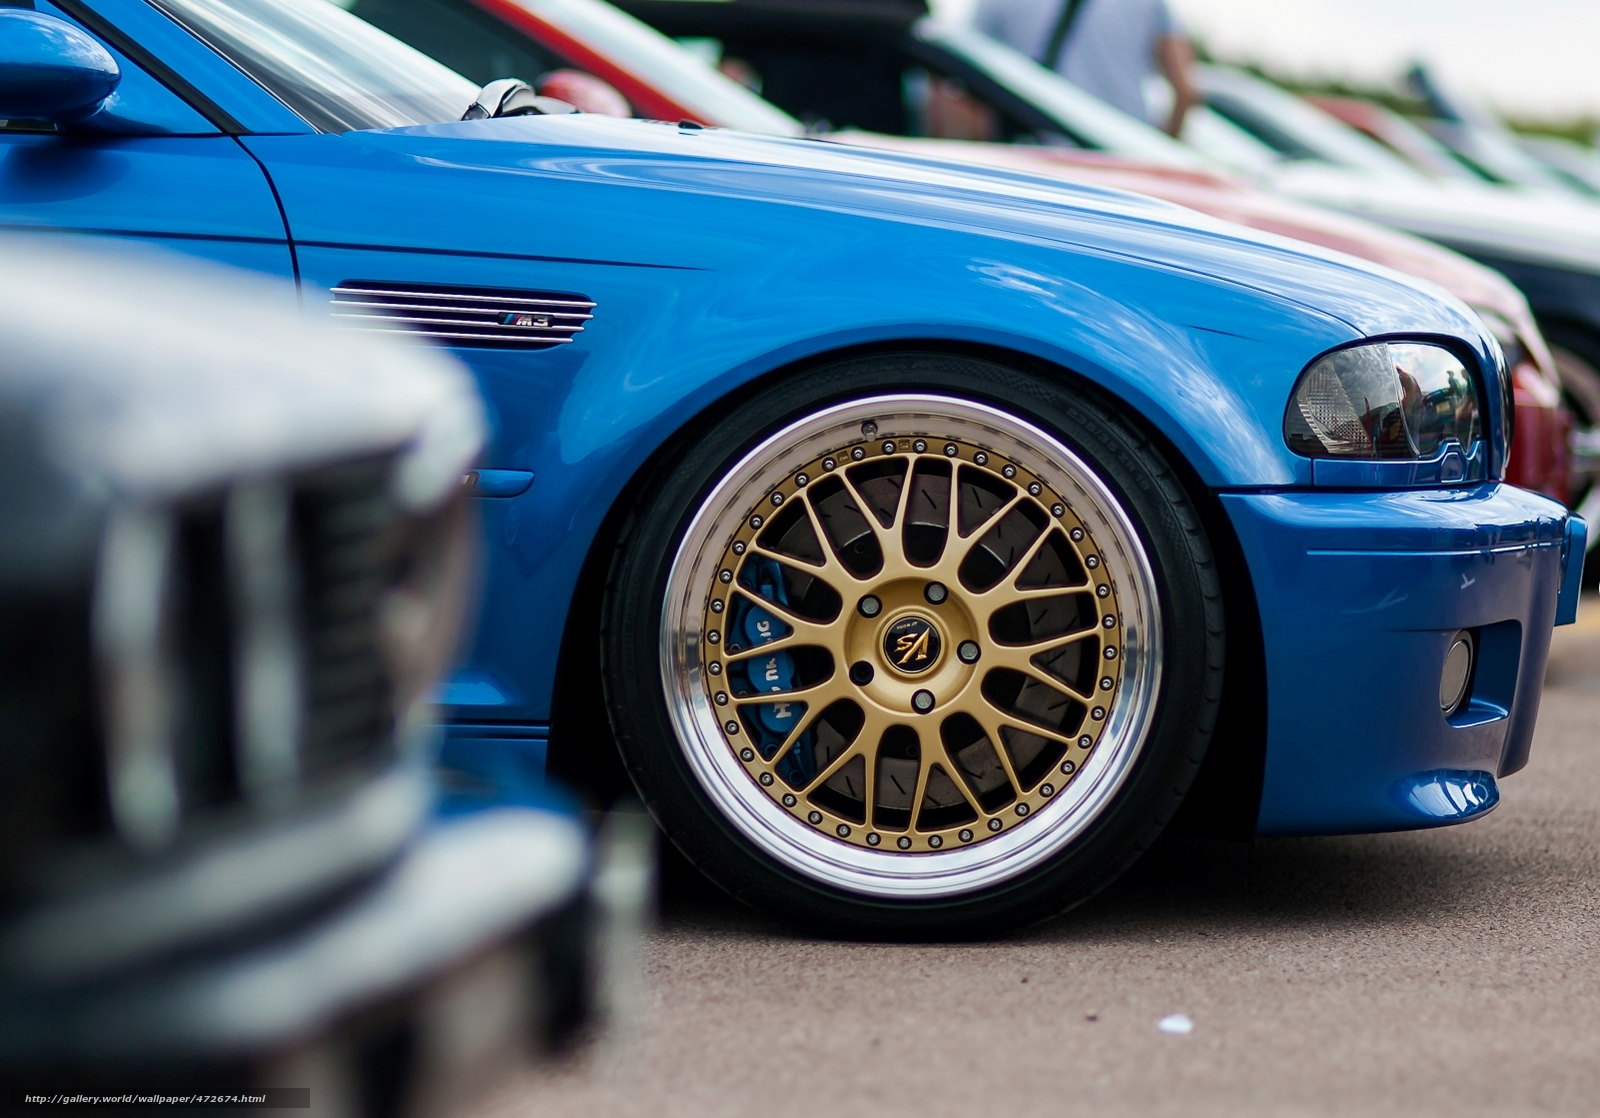 Download wallpaper bmw e46 m3 stanced free desktop wallpaper in the resolution 1602x1119 picture 472674